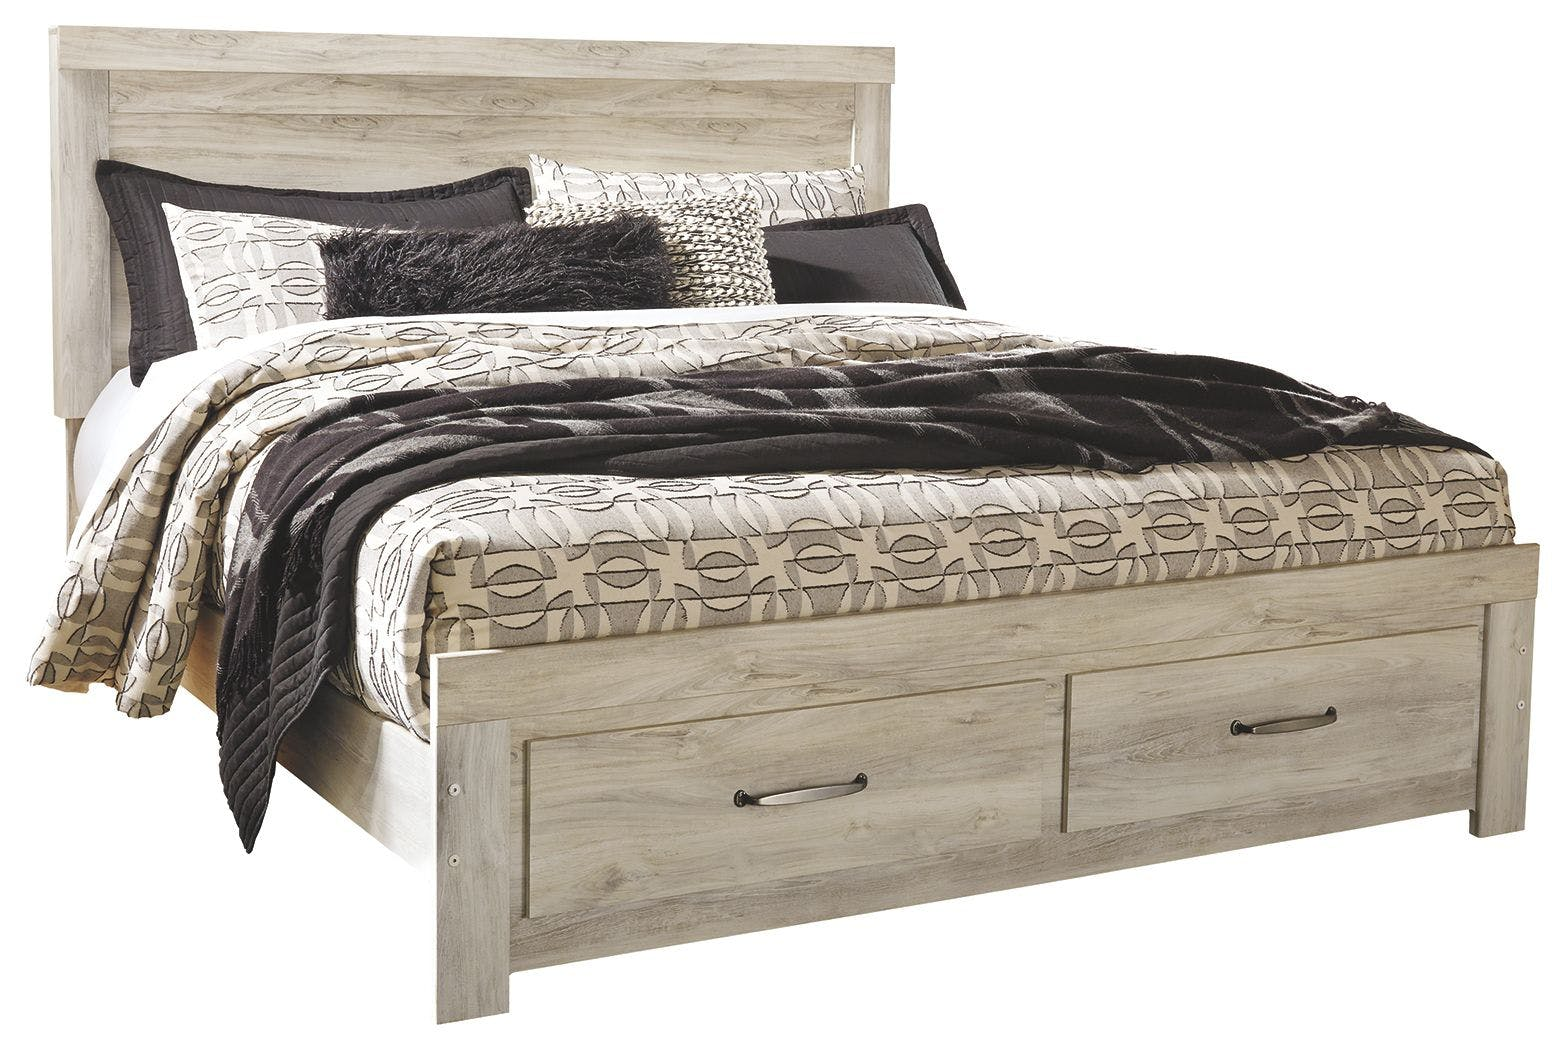 Signature Design By Ashley Bedroom Bellaby King Platform Bed With 2 Storage Drawers B331b9